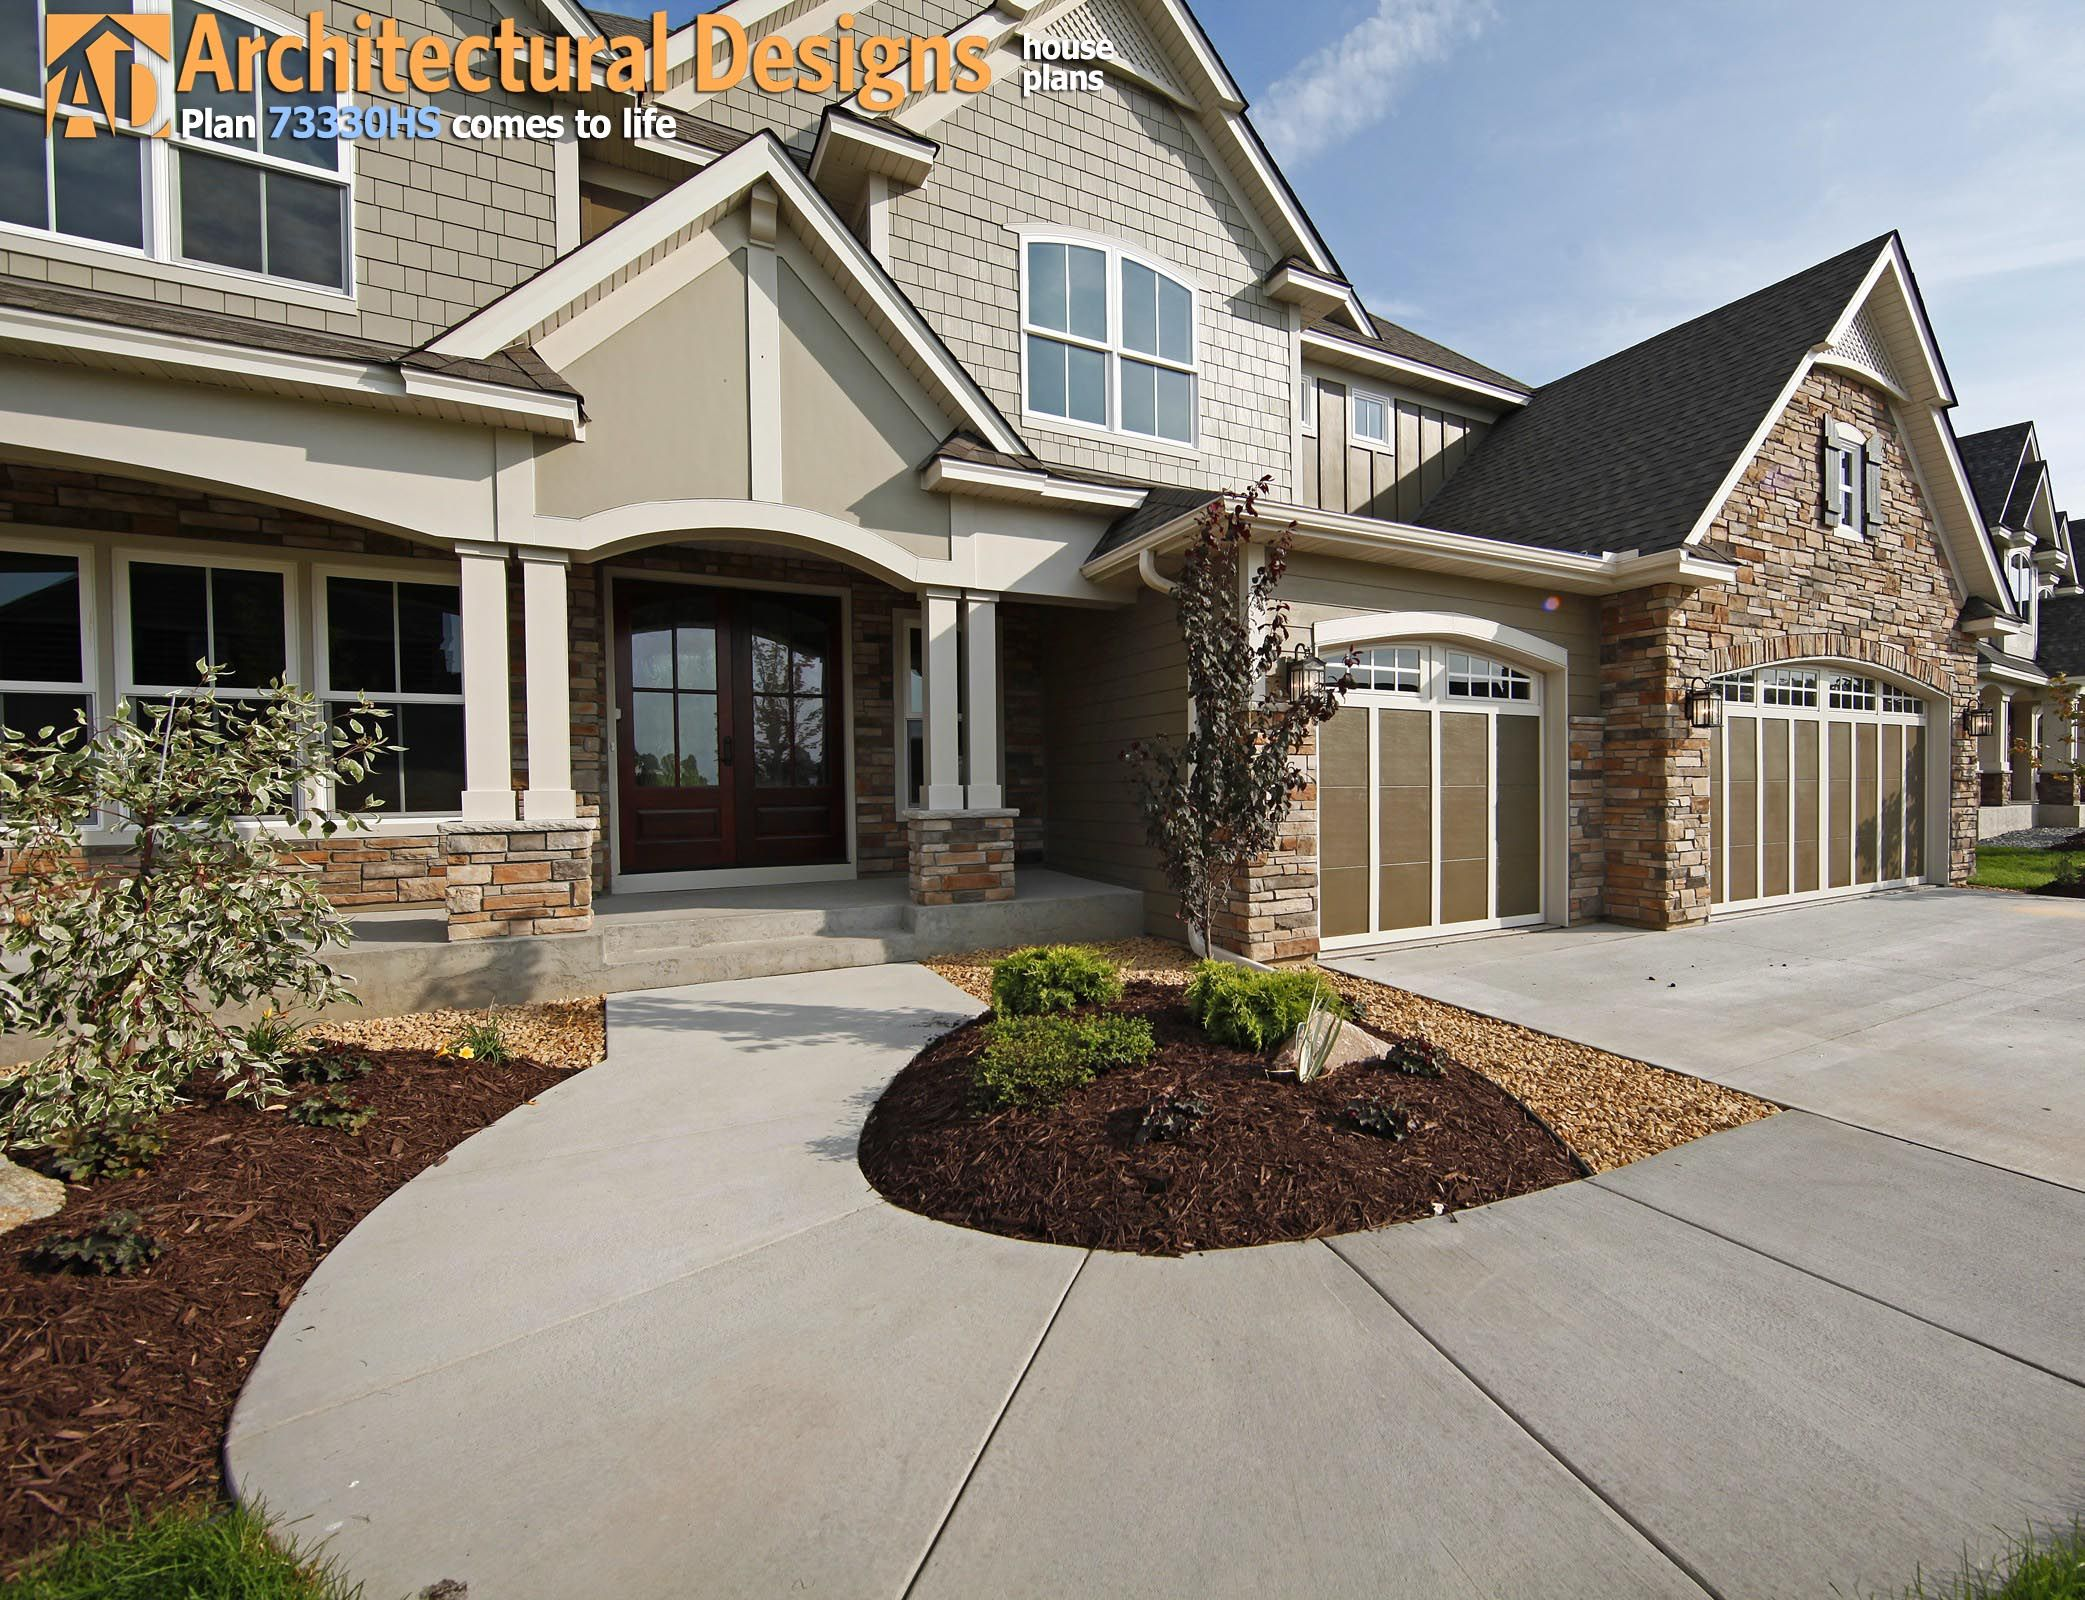 Plan HS View of front entry porch and garage House Plan